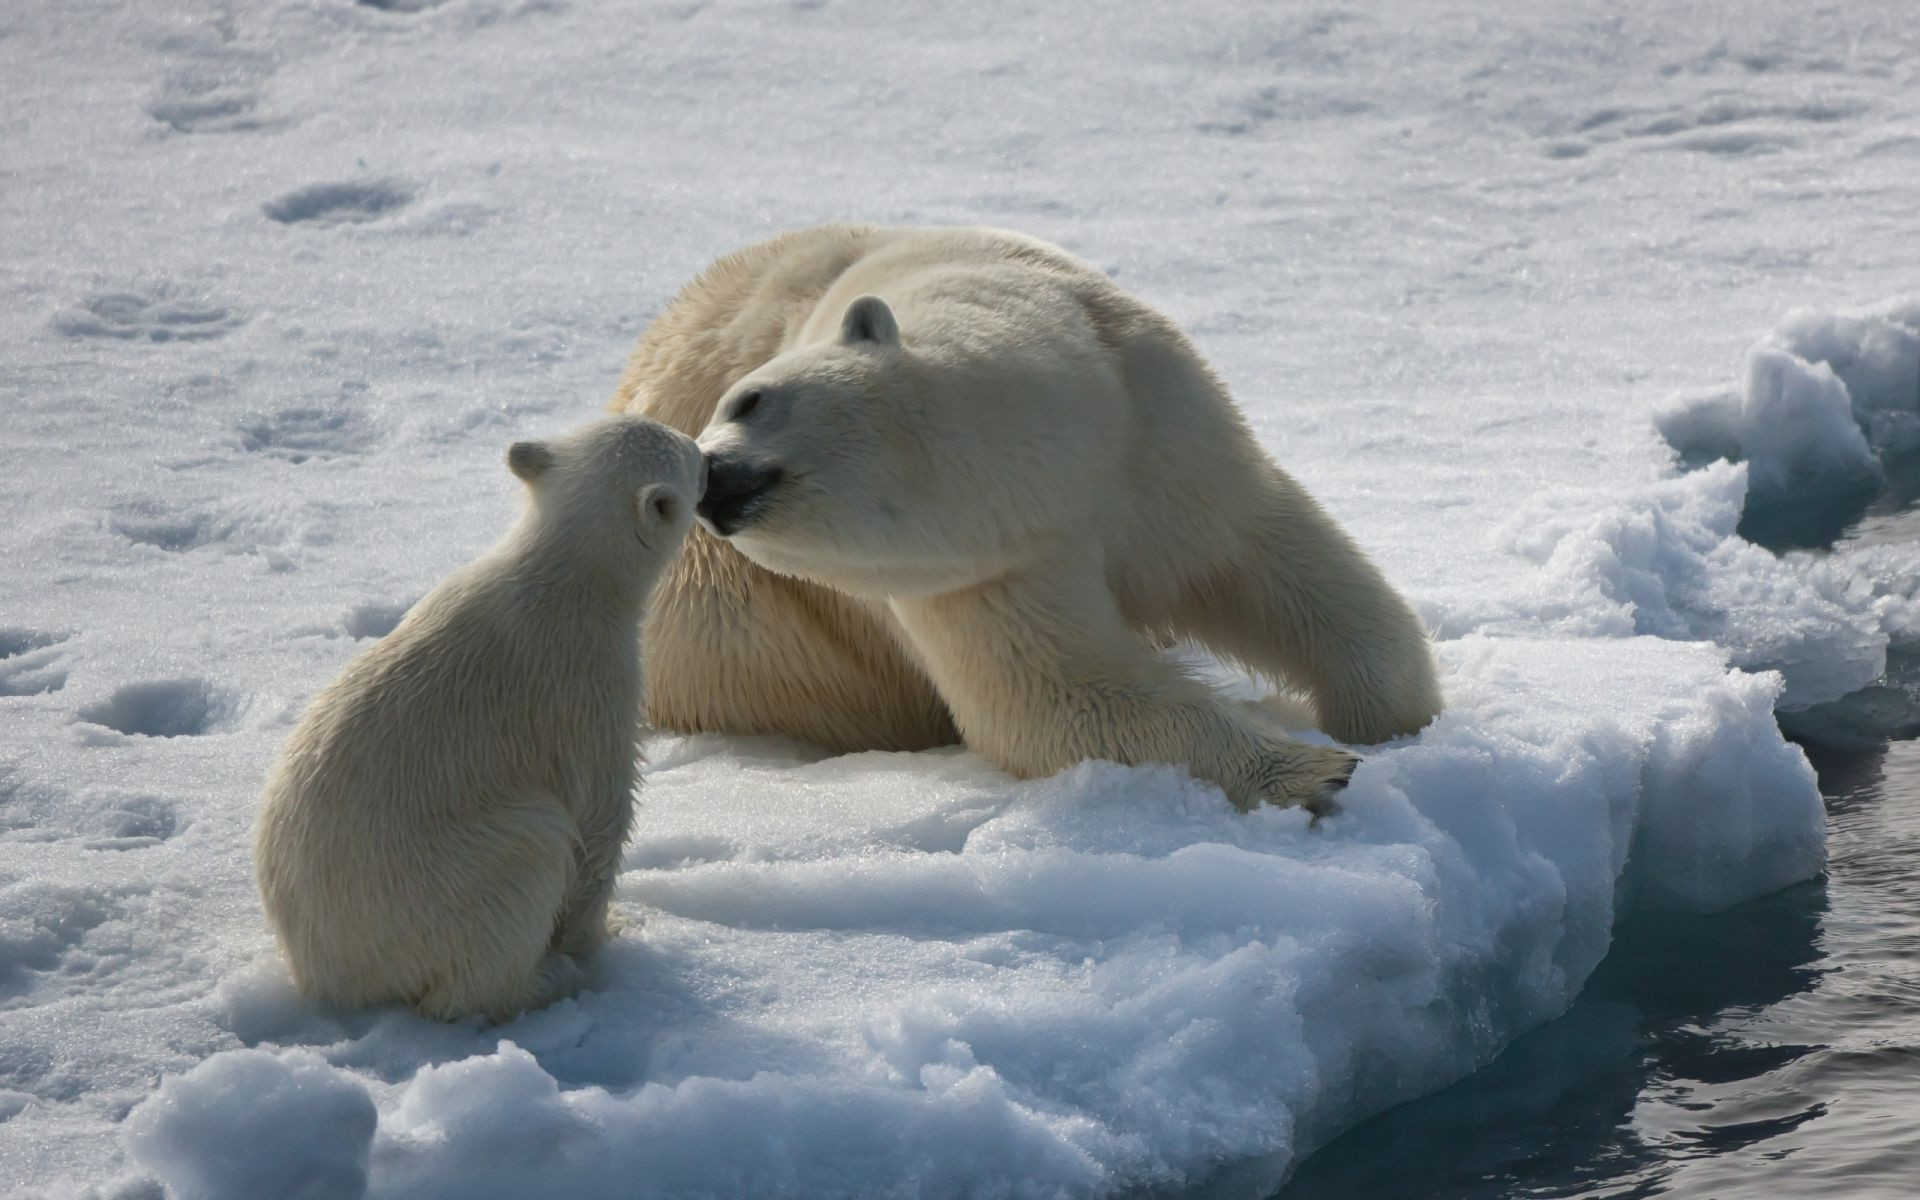 bears snow frosty winter ice cold polar mammal outdoors wildlife frozen nature water frost daylight